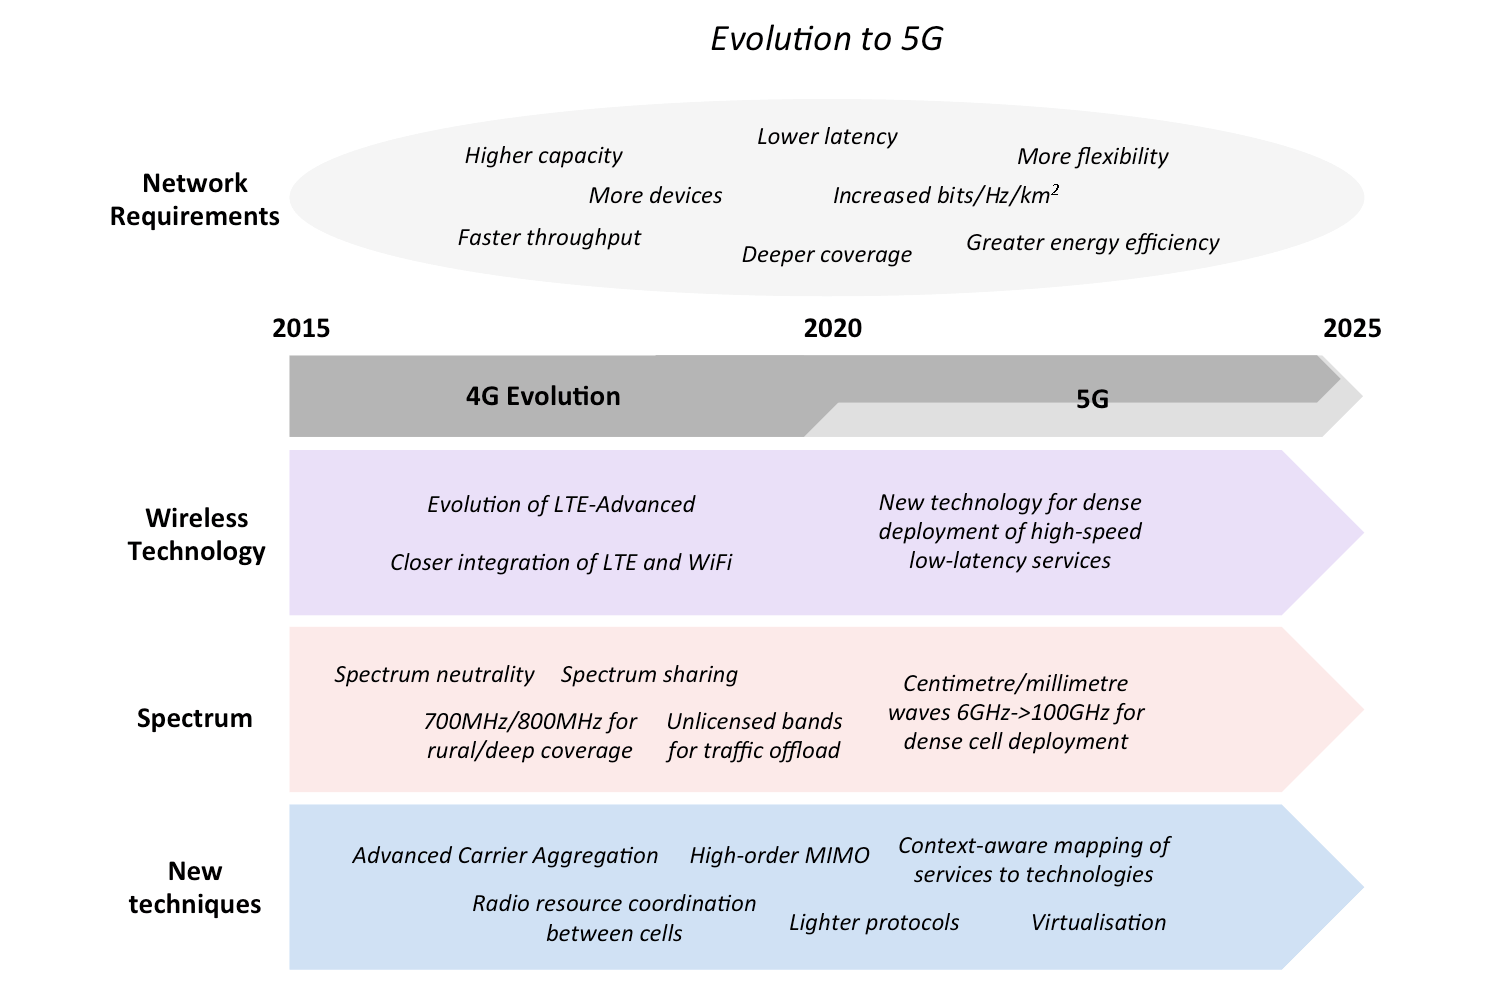 Infographic showing major developments in the evolution from 4G to 5G networks, including wireless technology, spectrum and new techniques.